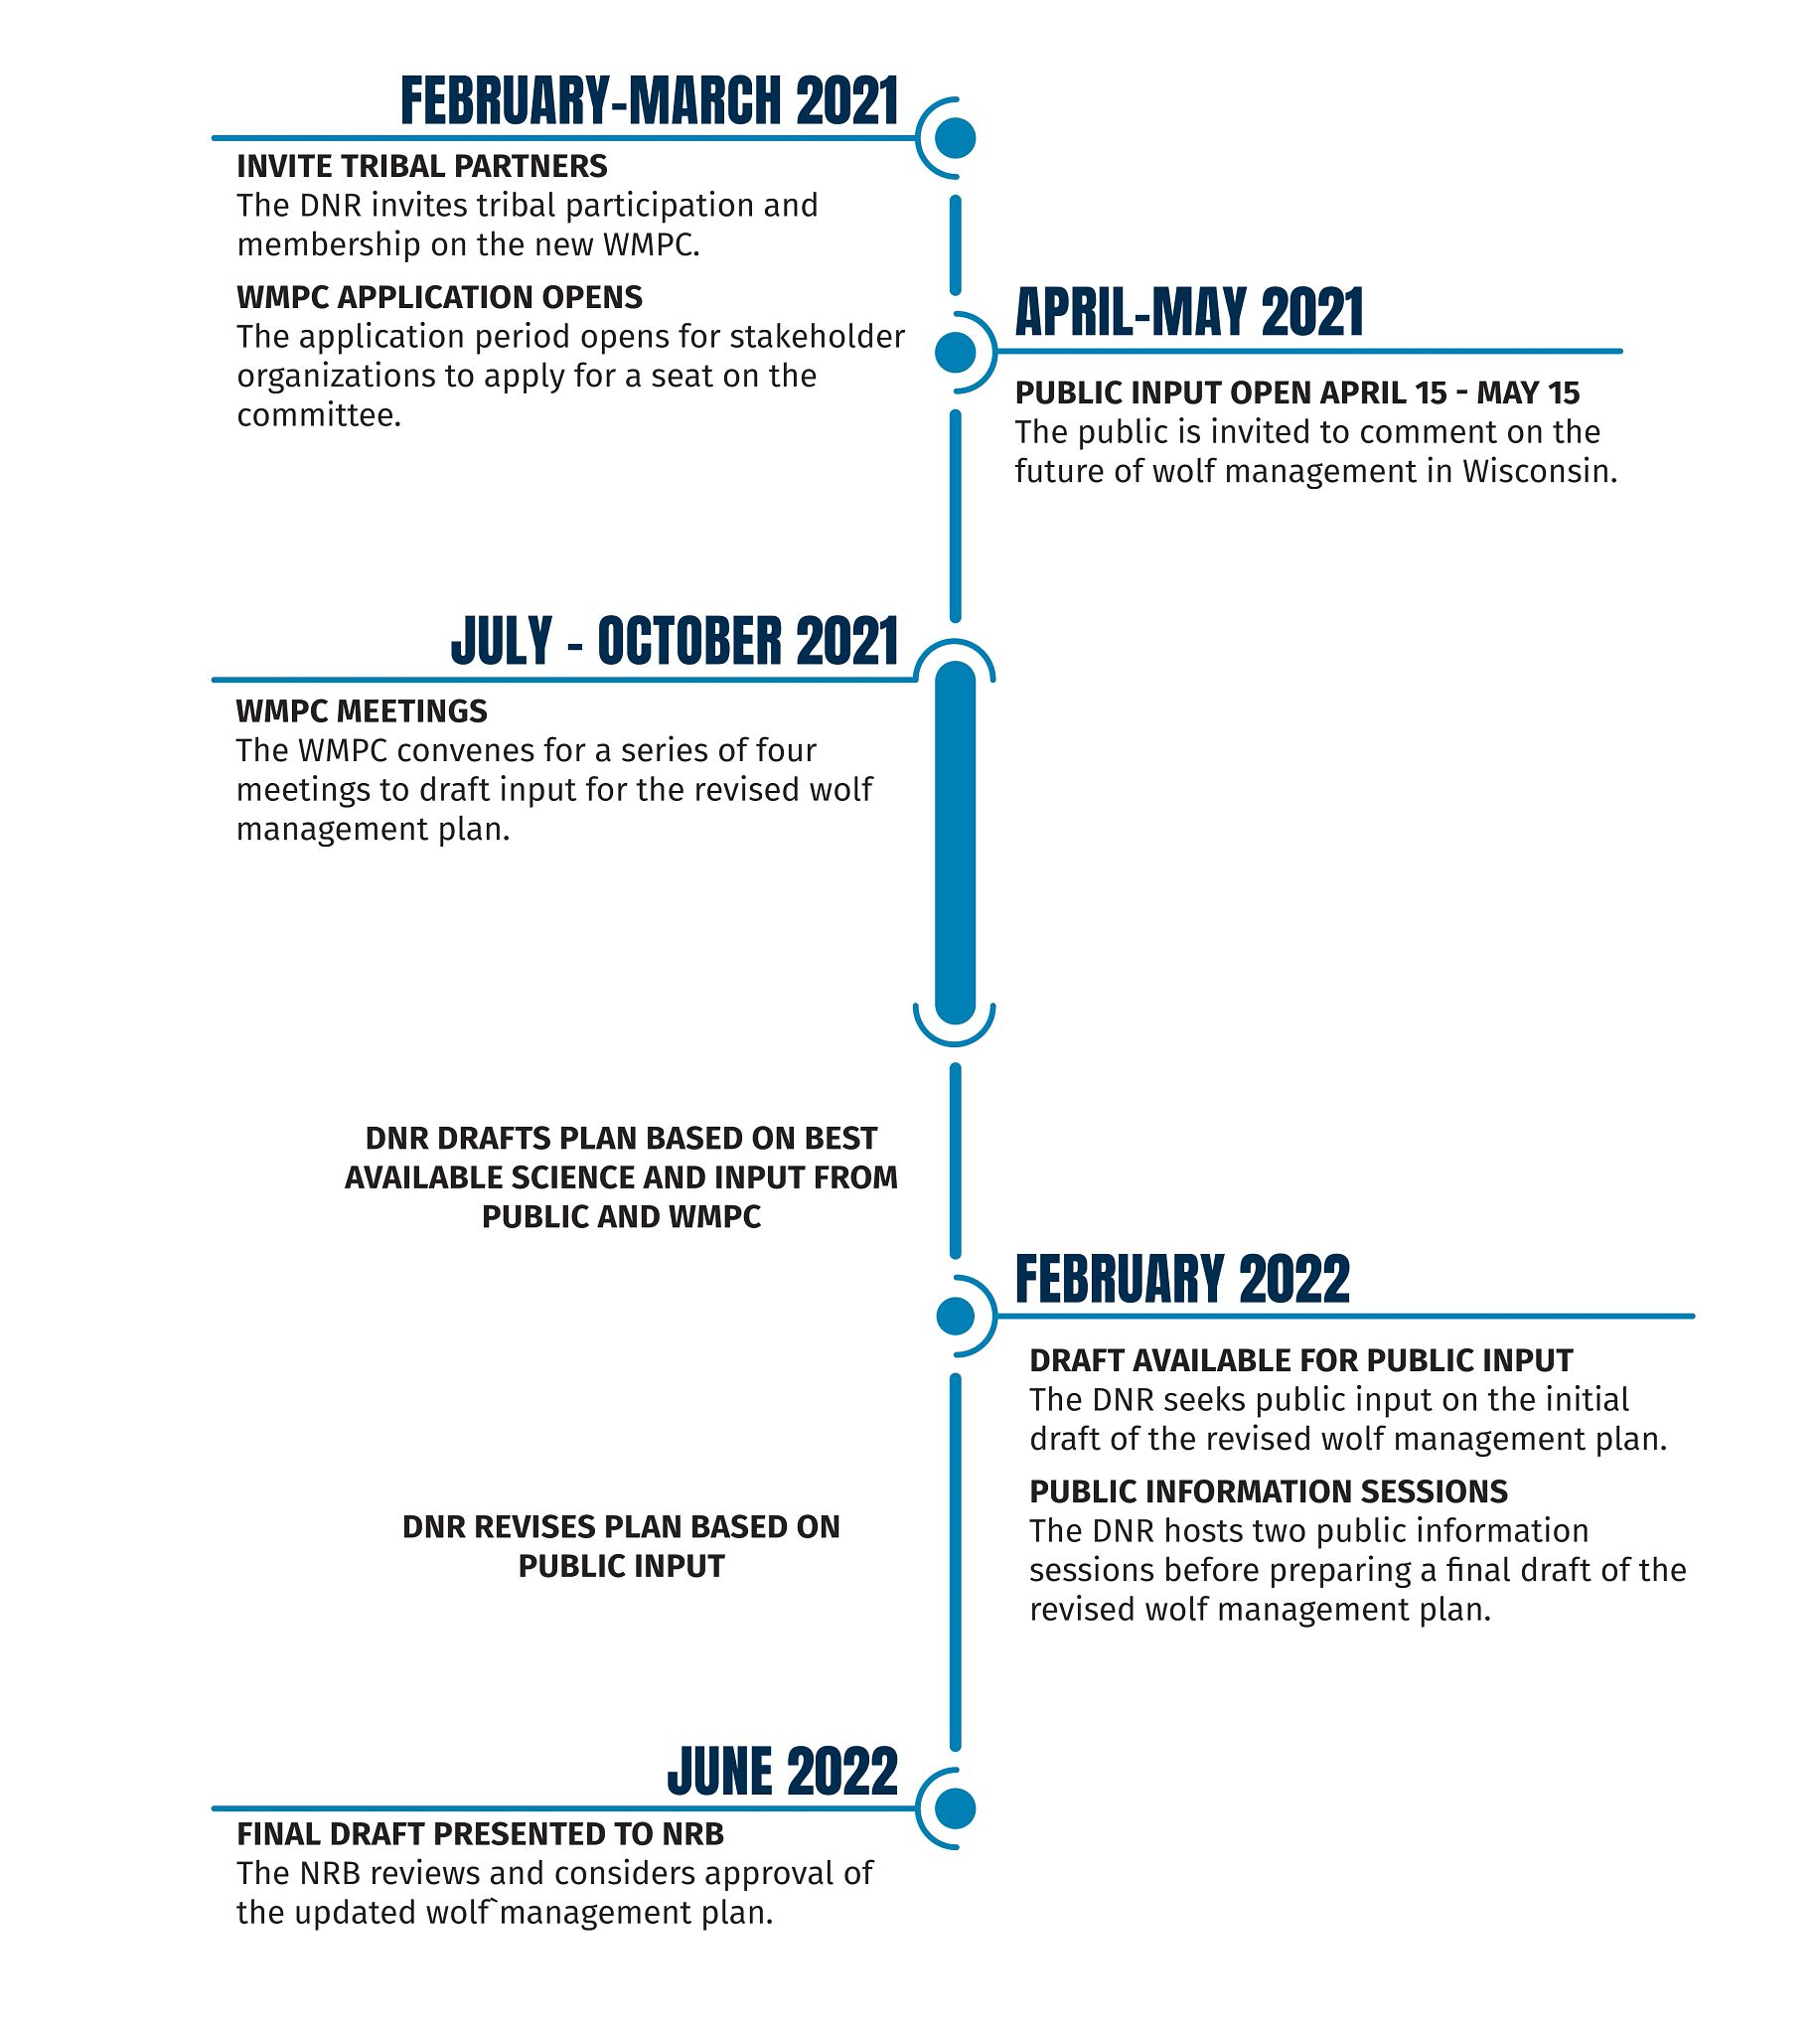 2021 Wolf Management Plan Timeline_2021-04-02 Update2.jpg